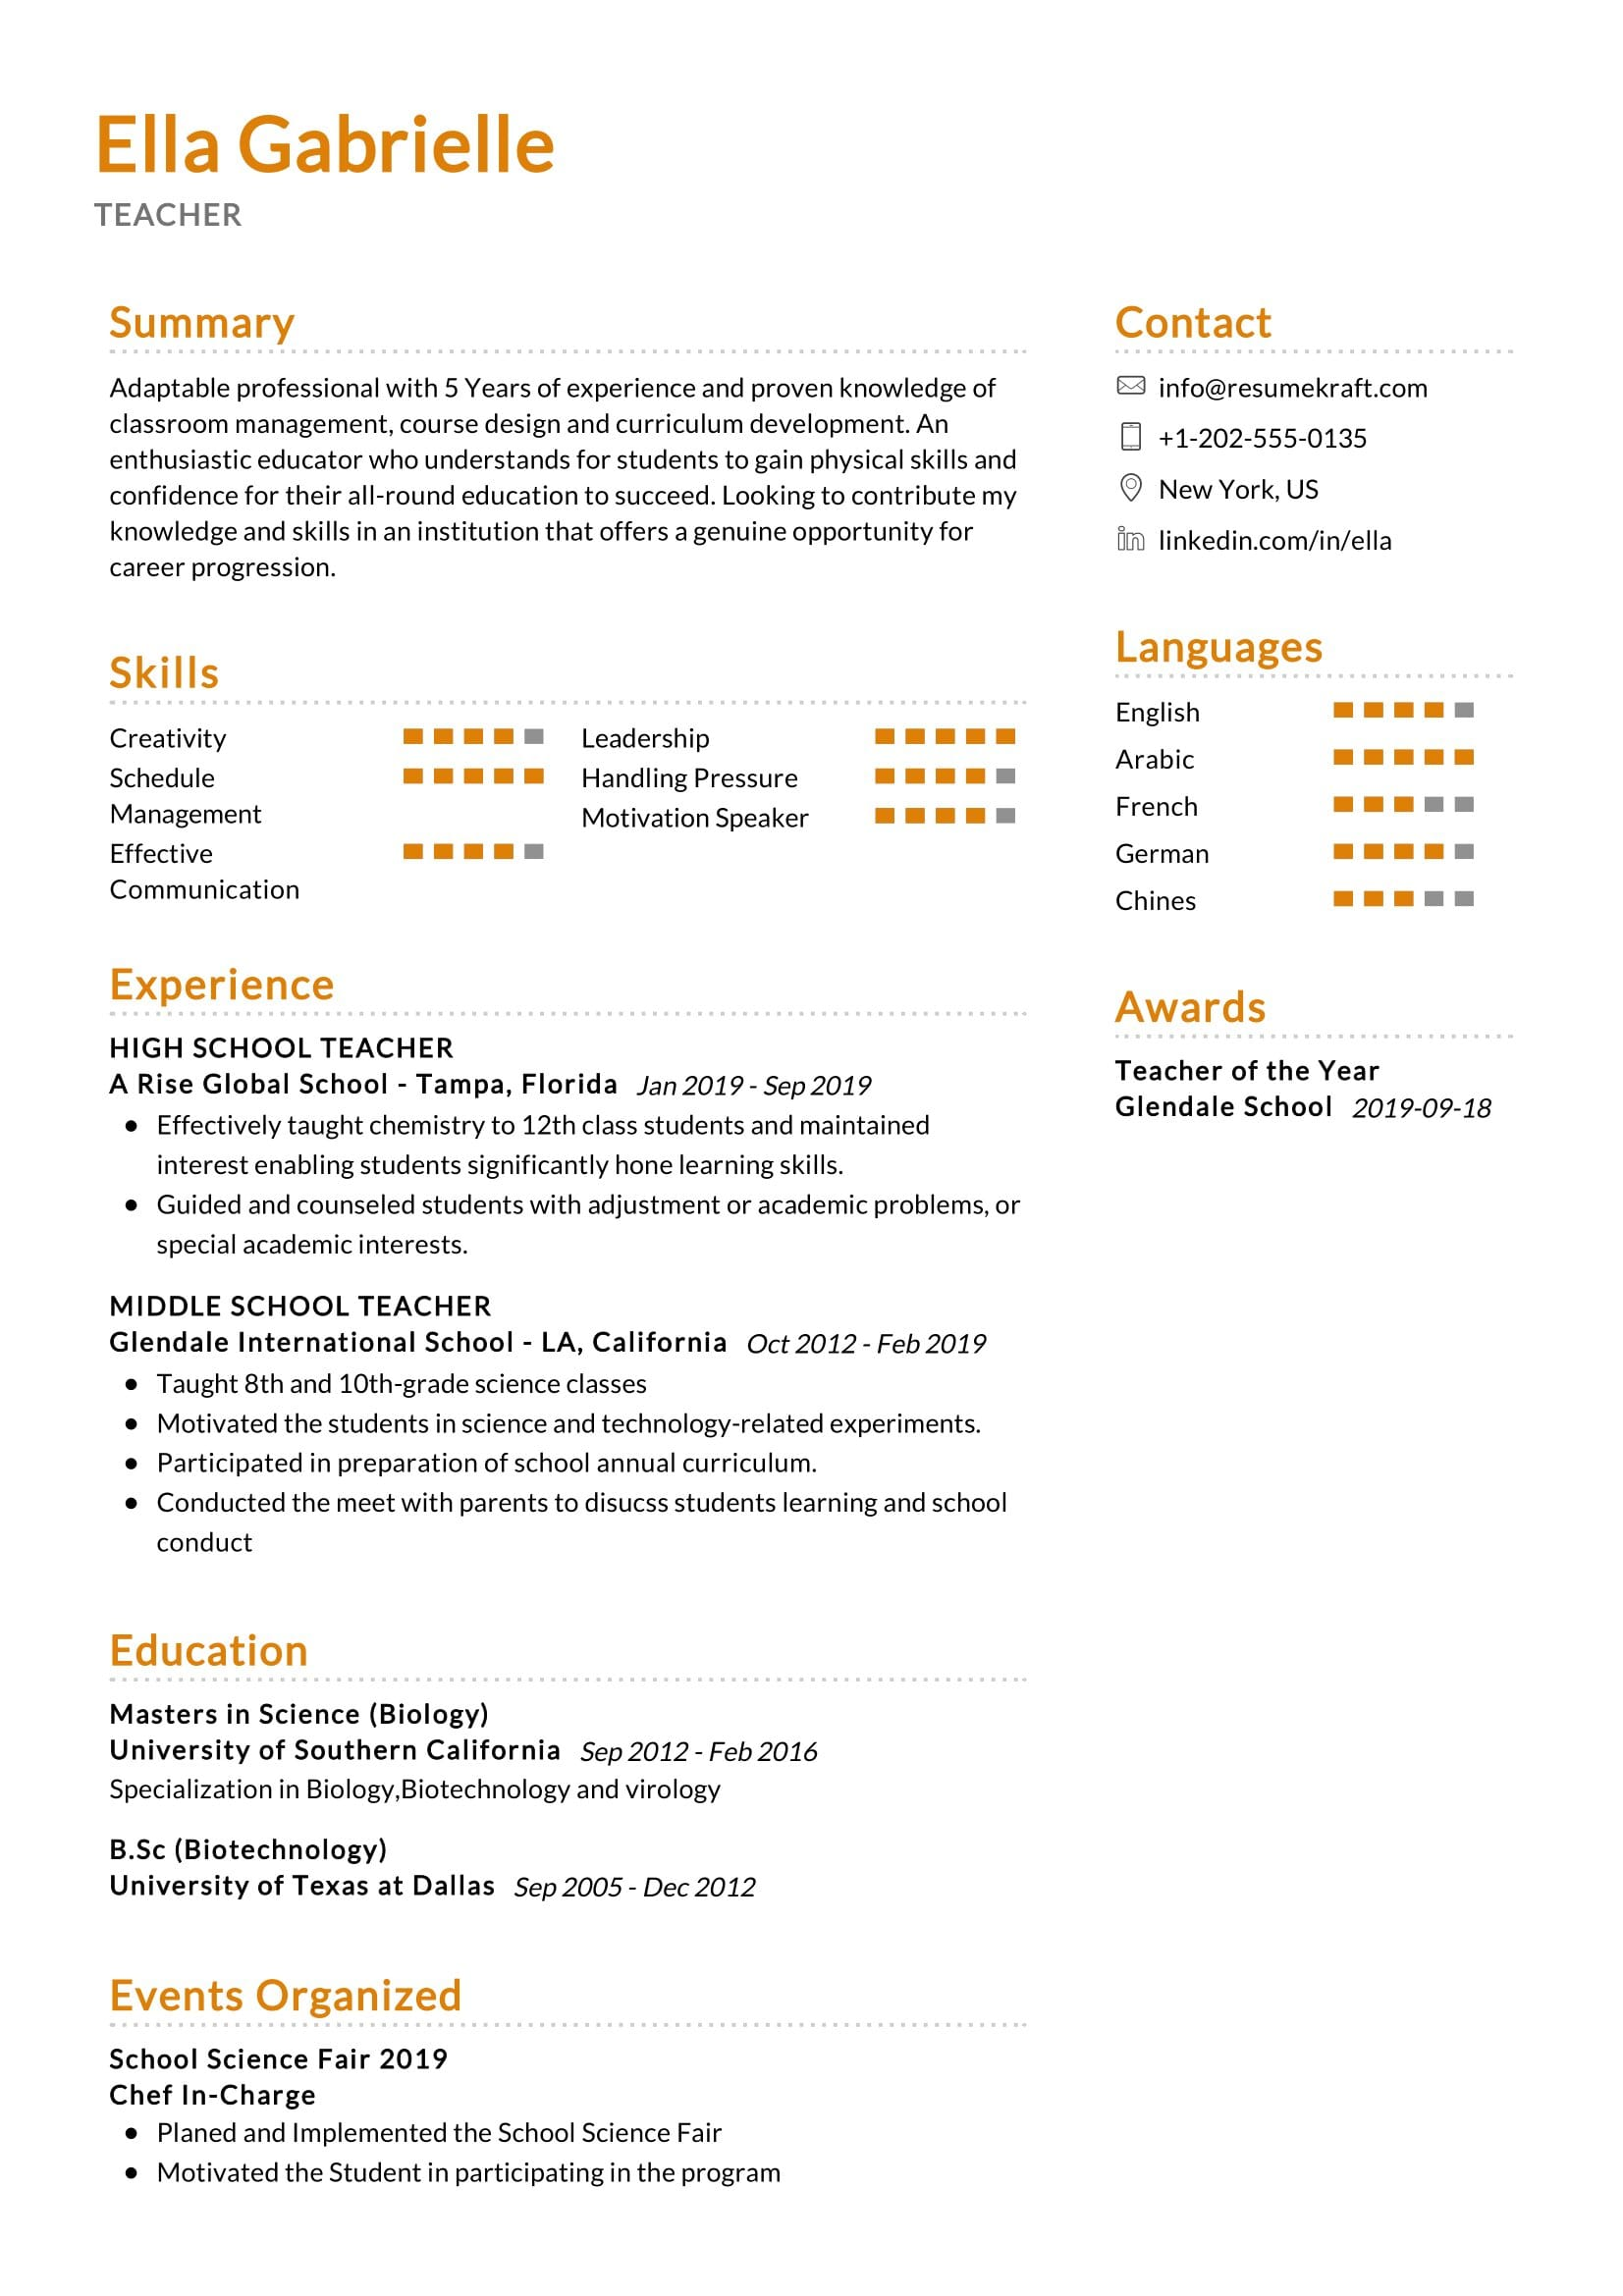 middle school teacher resume sample resumekraft skills for science strong summary Resume Skills For Science Teacher Resume